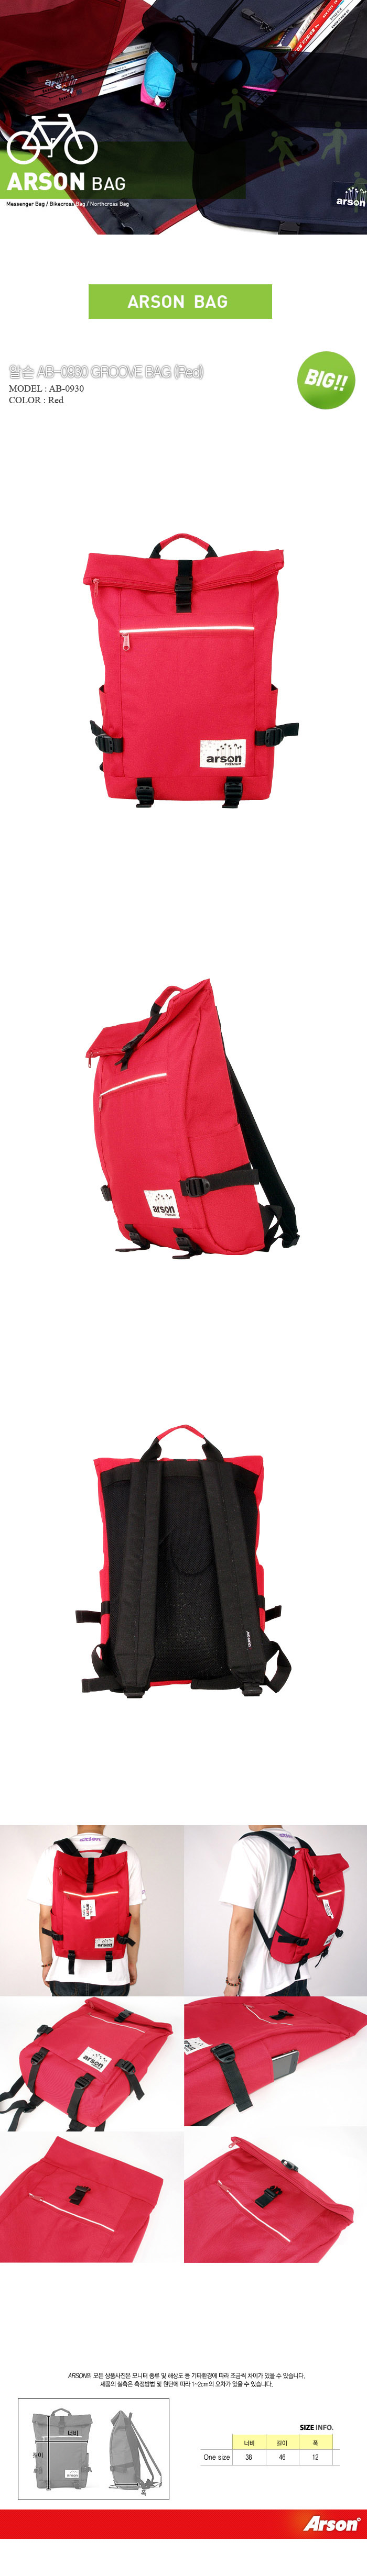 [ ARSON ] AB-0930 (Red)/Backpack School Bag